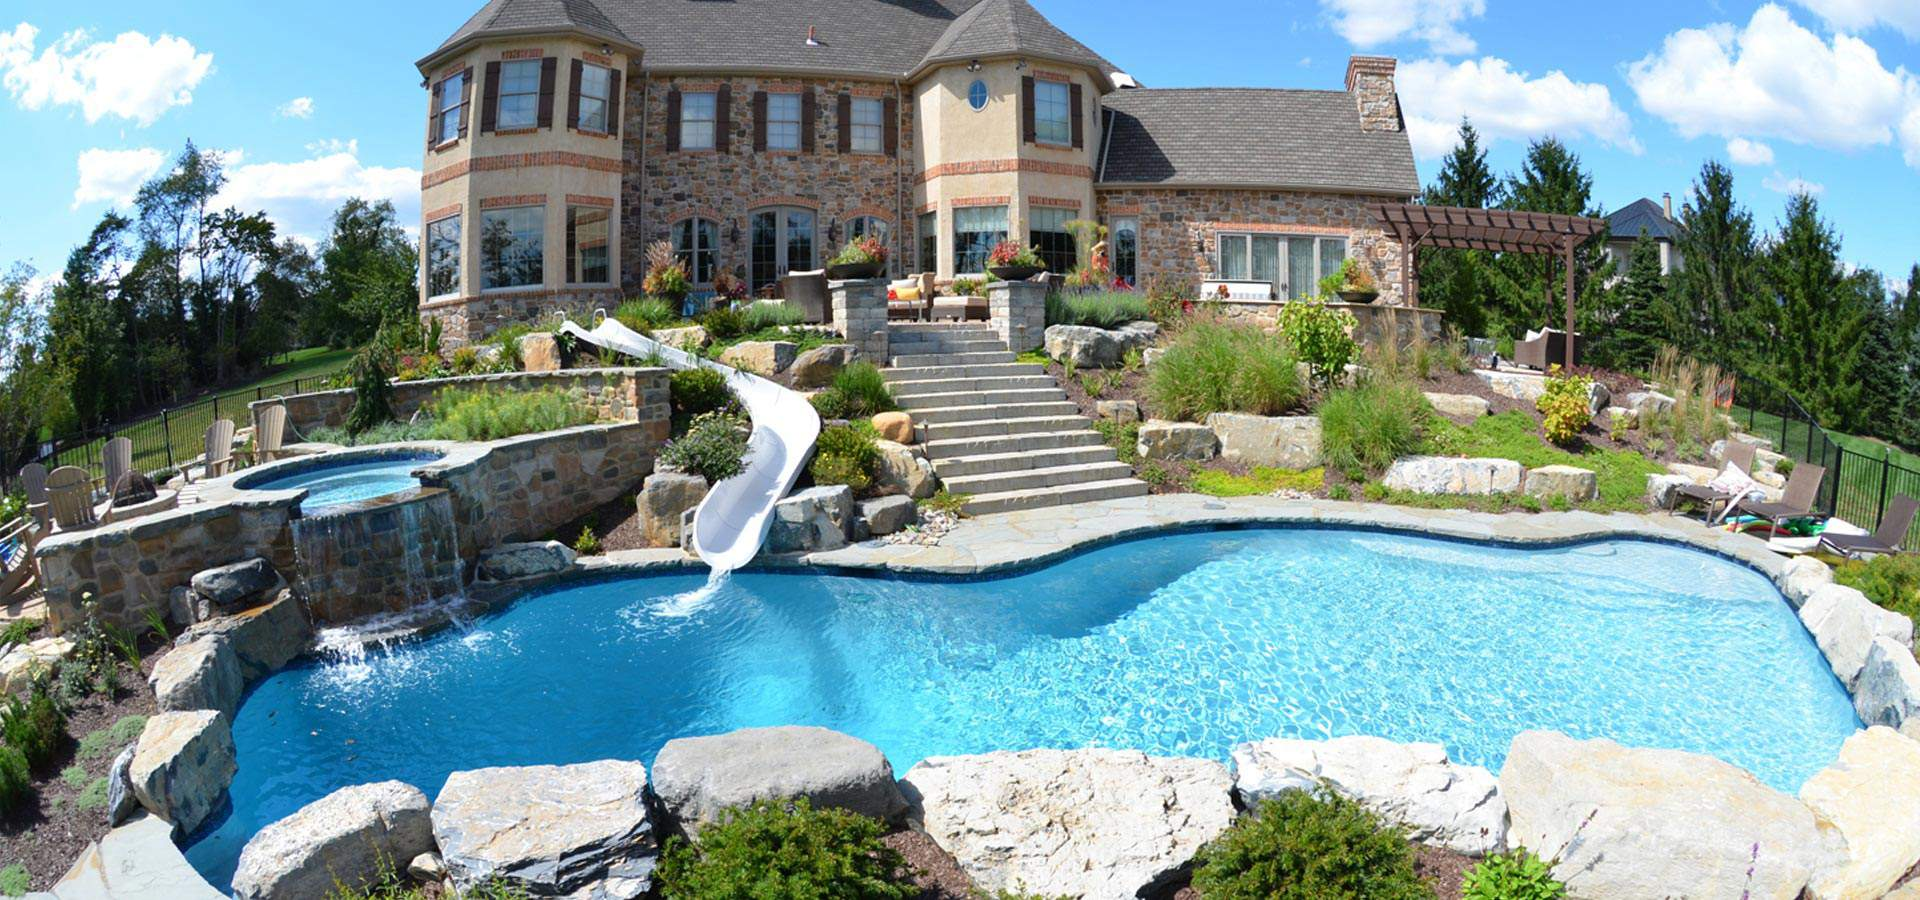 1 pool builder in lehigh valley pa best inground pools for Inground swimming pool plans